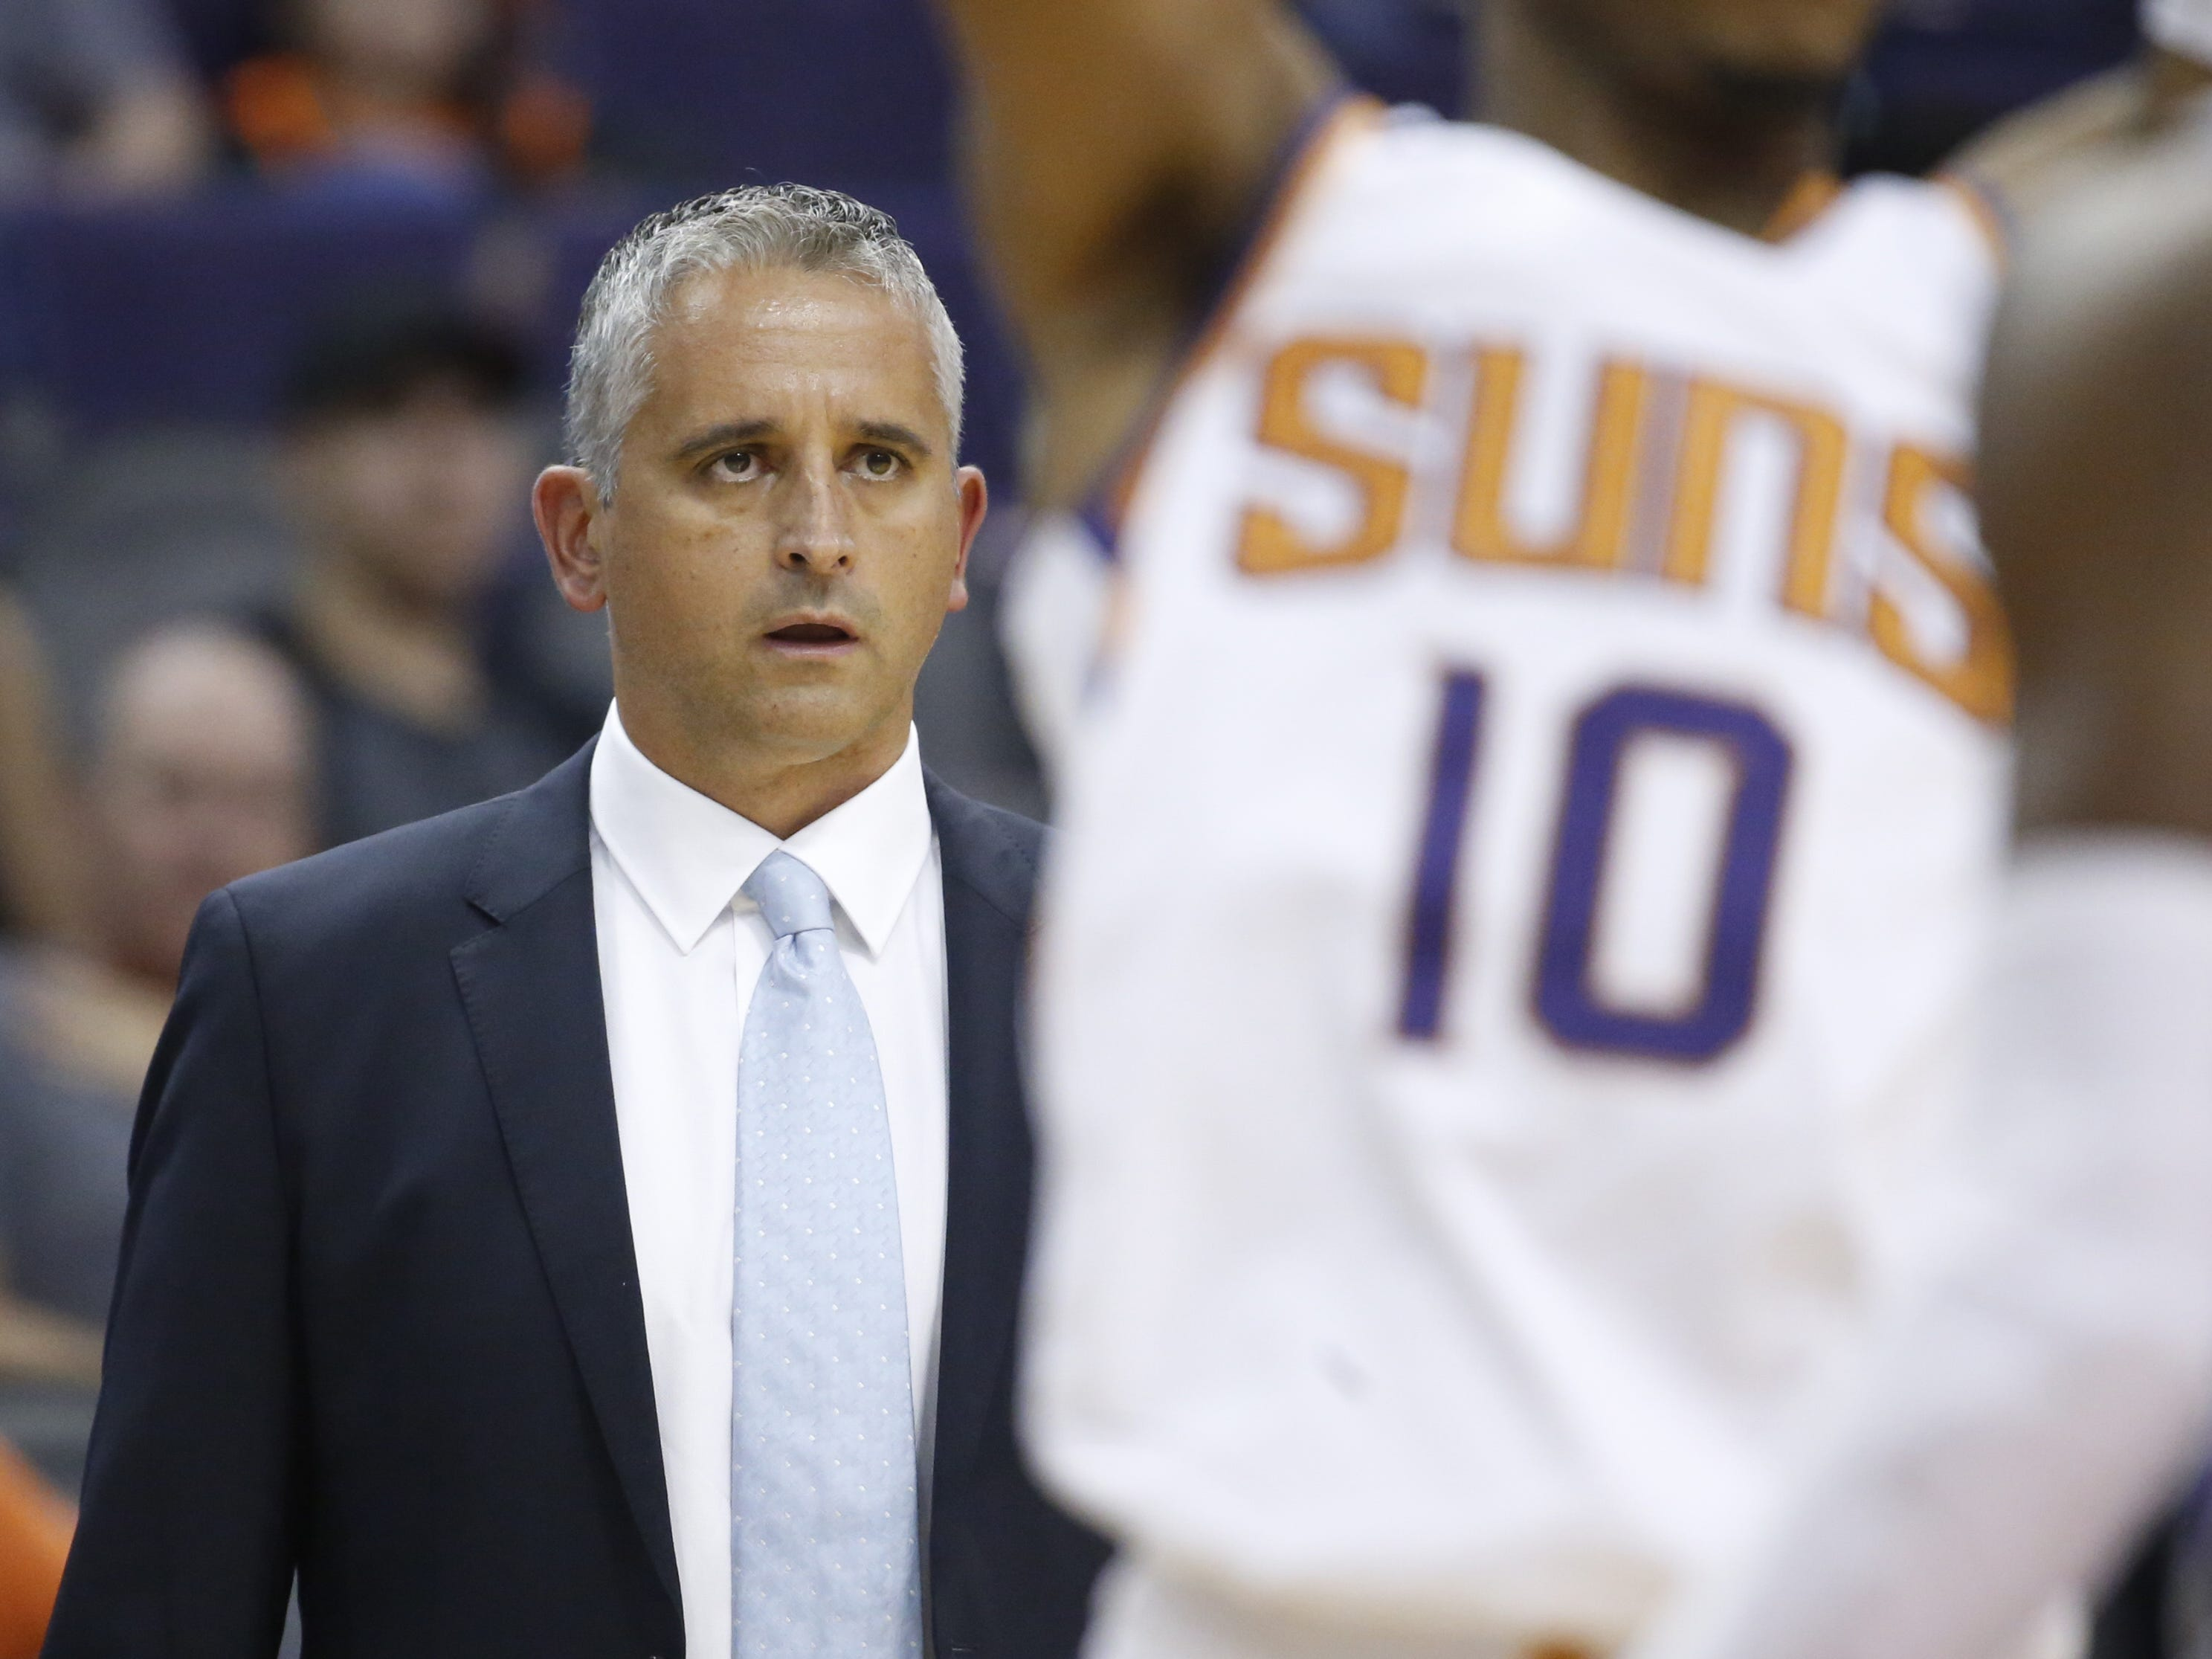 Suns head coach Igo Kokoskov watches his team play the Kings during the first half at Talking Stick Resort Arena in Phoenix, Ariz. on October 1, 2018.